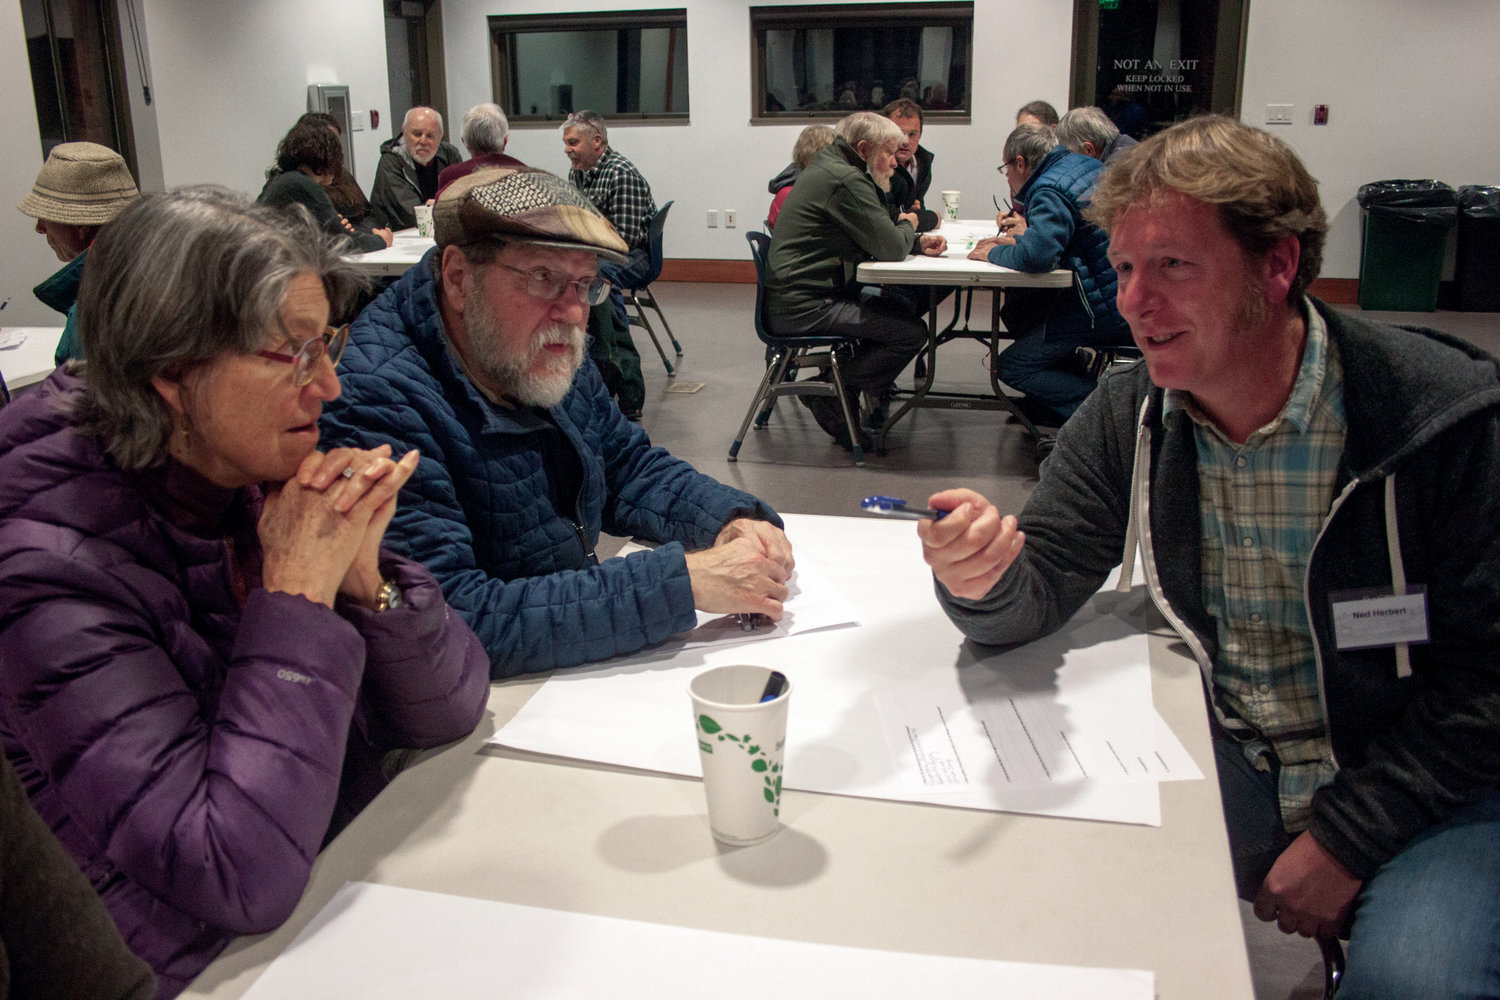 From left, Nancy Vilogran and Frank Poyle offer their input on what they're looking for in a city manager to Ned Herbert at the Cotton Building Nov. 28.